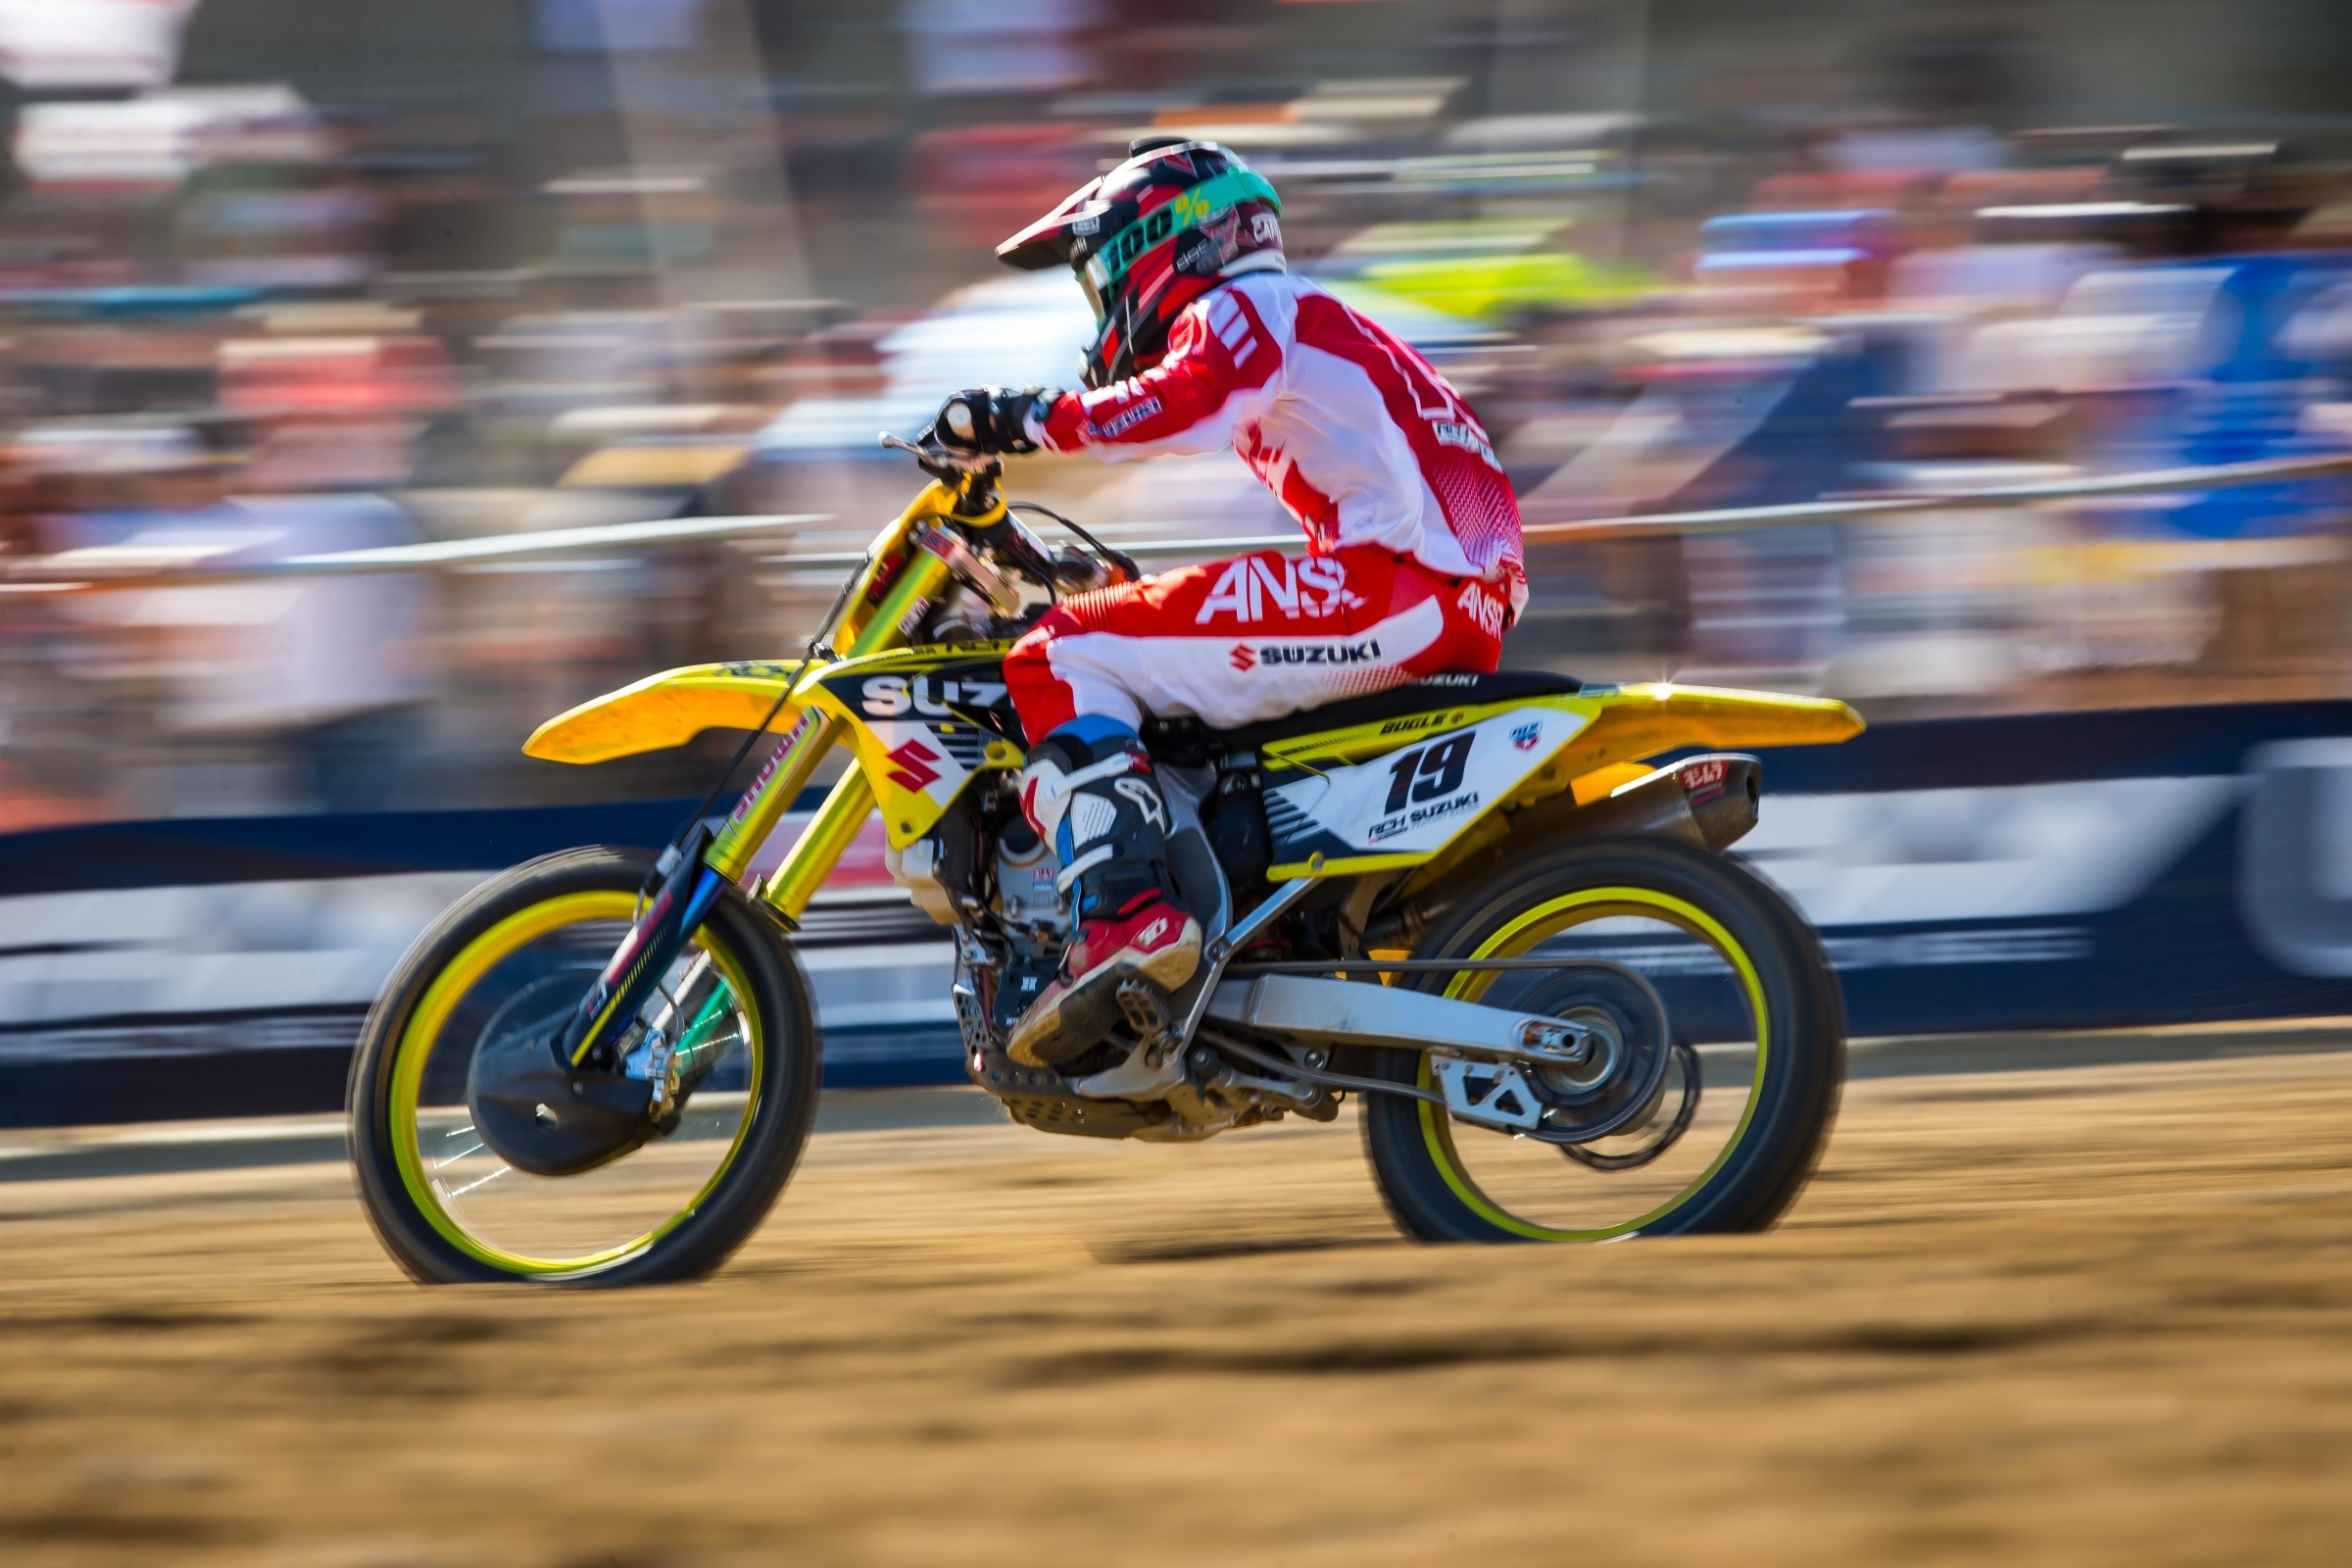 Suzuki And Rch Conclude Partnership Motocross Racer X Online